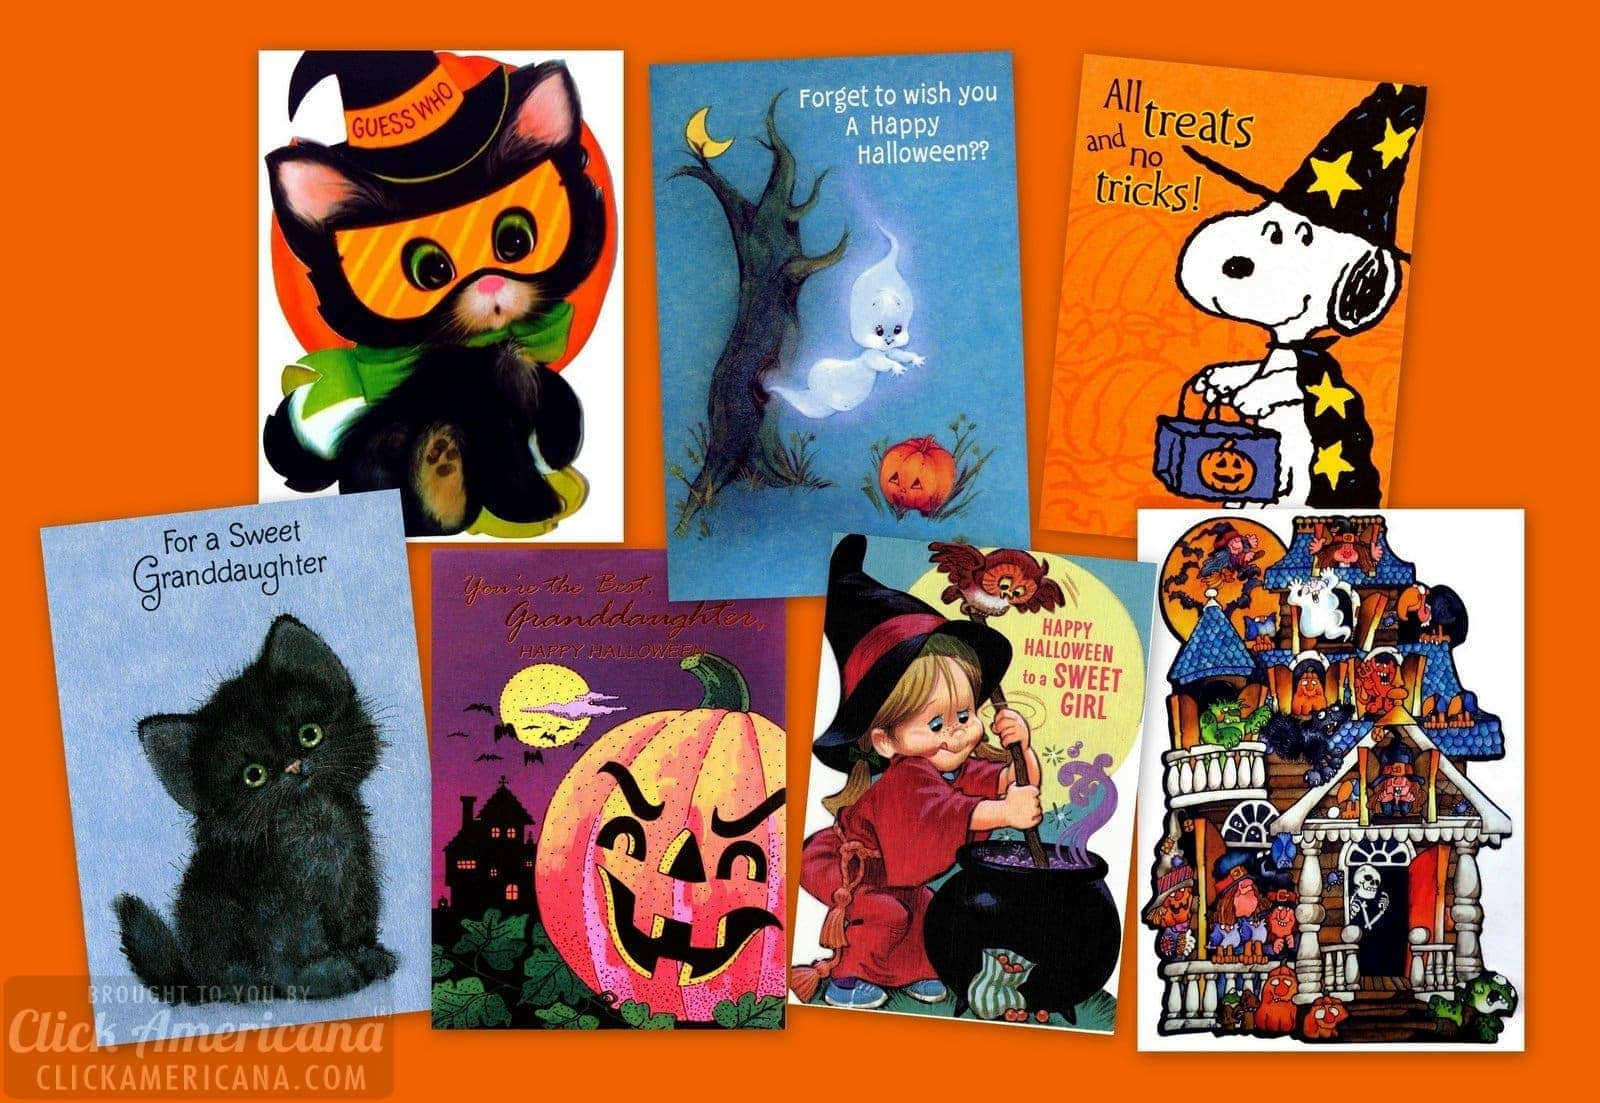 15 vintage Halloween cards for kids from the 70s & 80s